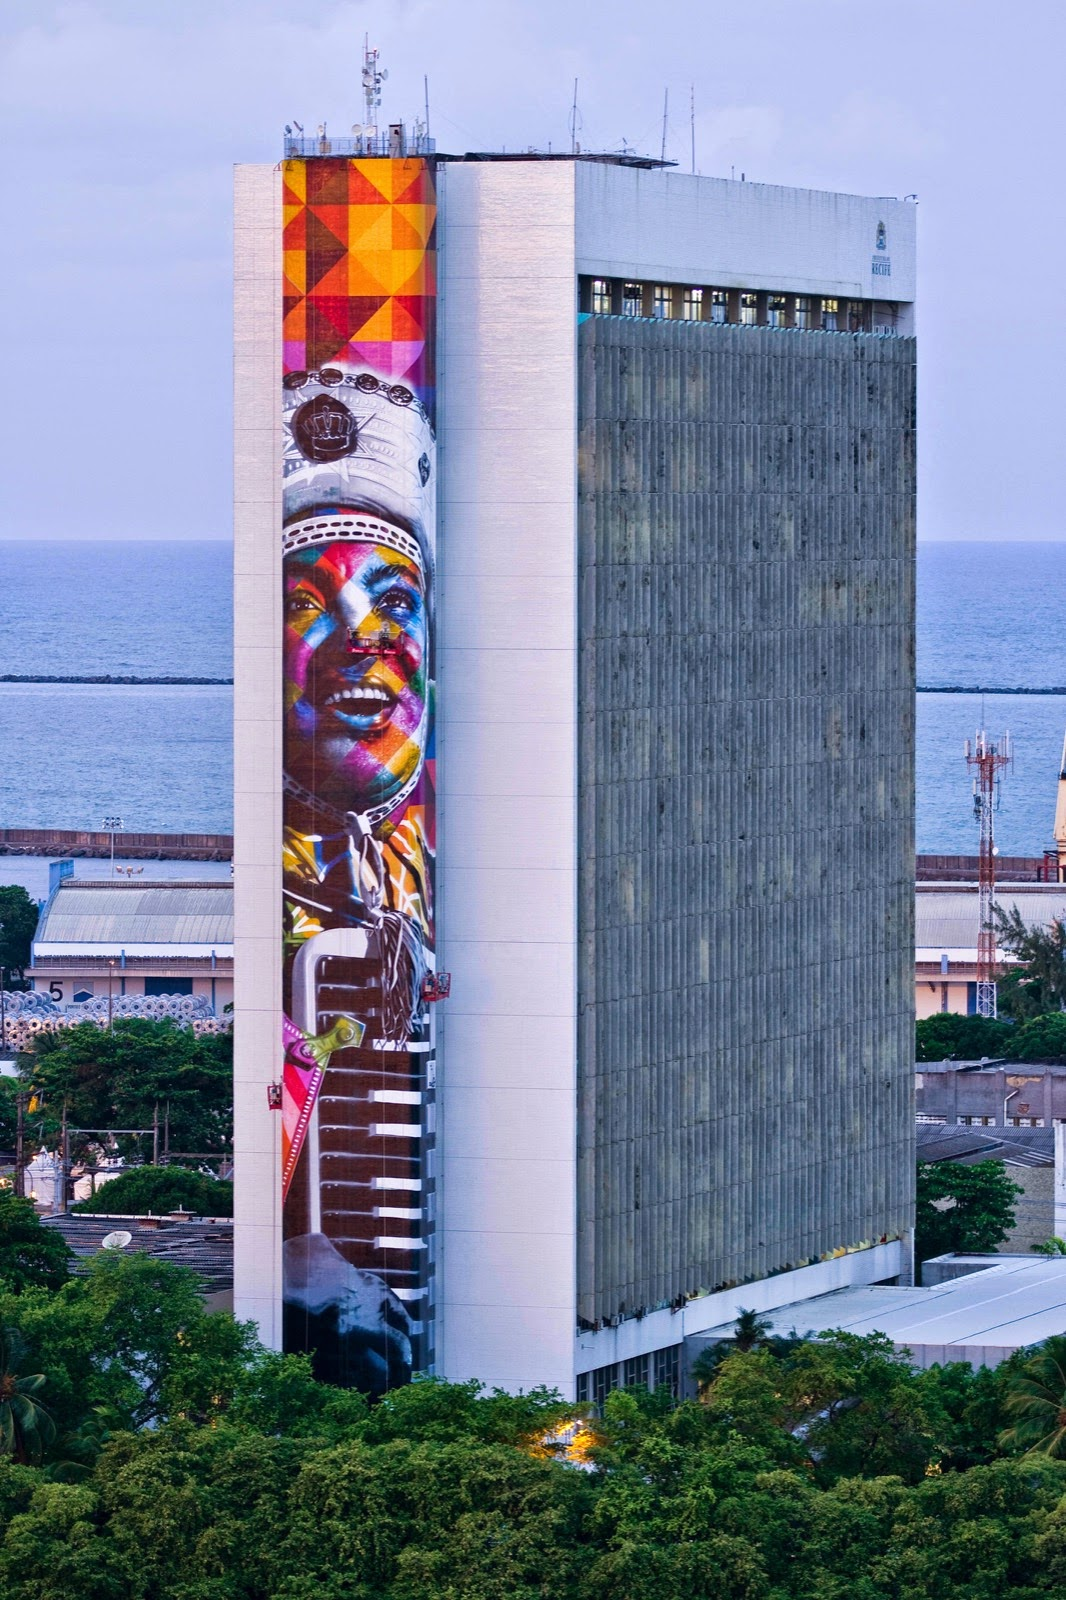 Eduardo Kobra is currently in Brazil where he just finished working on this massive new piece in Recife, the fifth-largest metropolitan area in the country with 3,743,854 inhabitants.